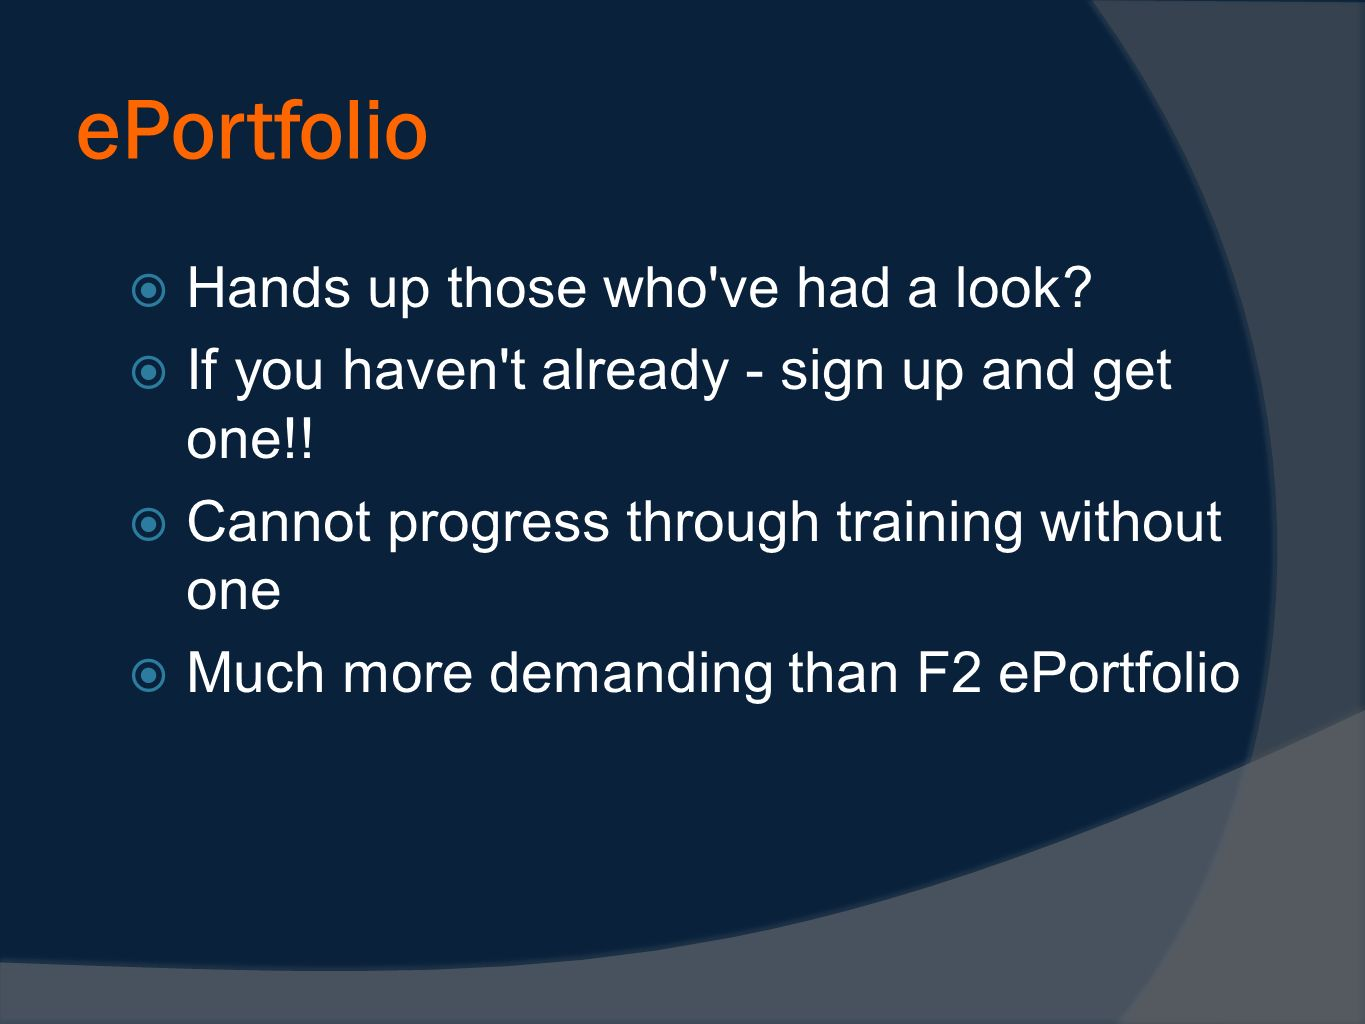 ePortfolio Hands up those who ve had a look. If you haven t already - sign up and get one!.